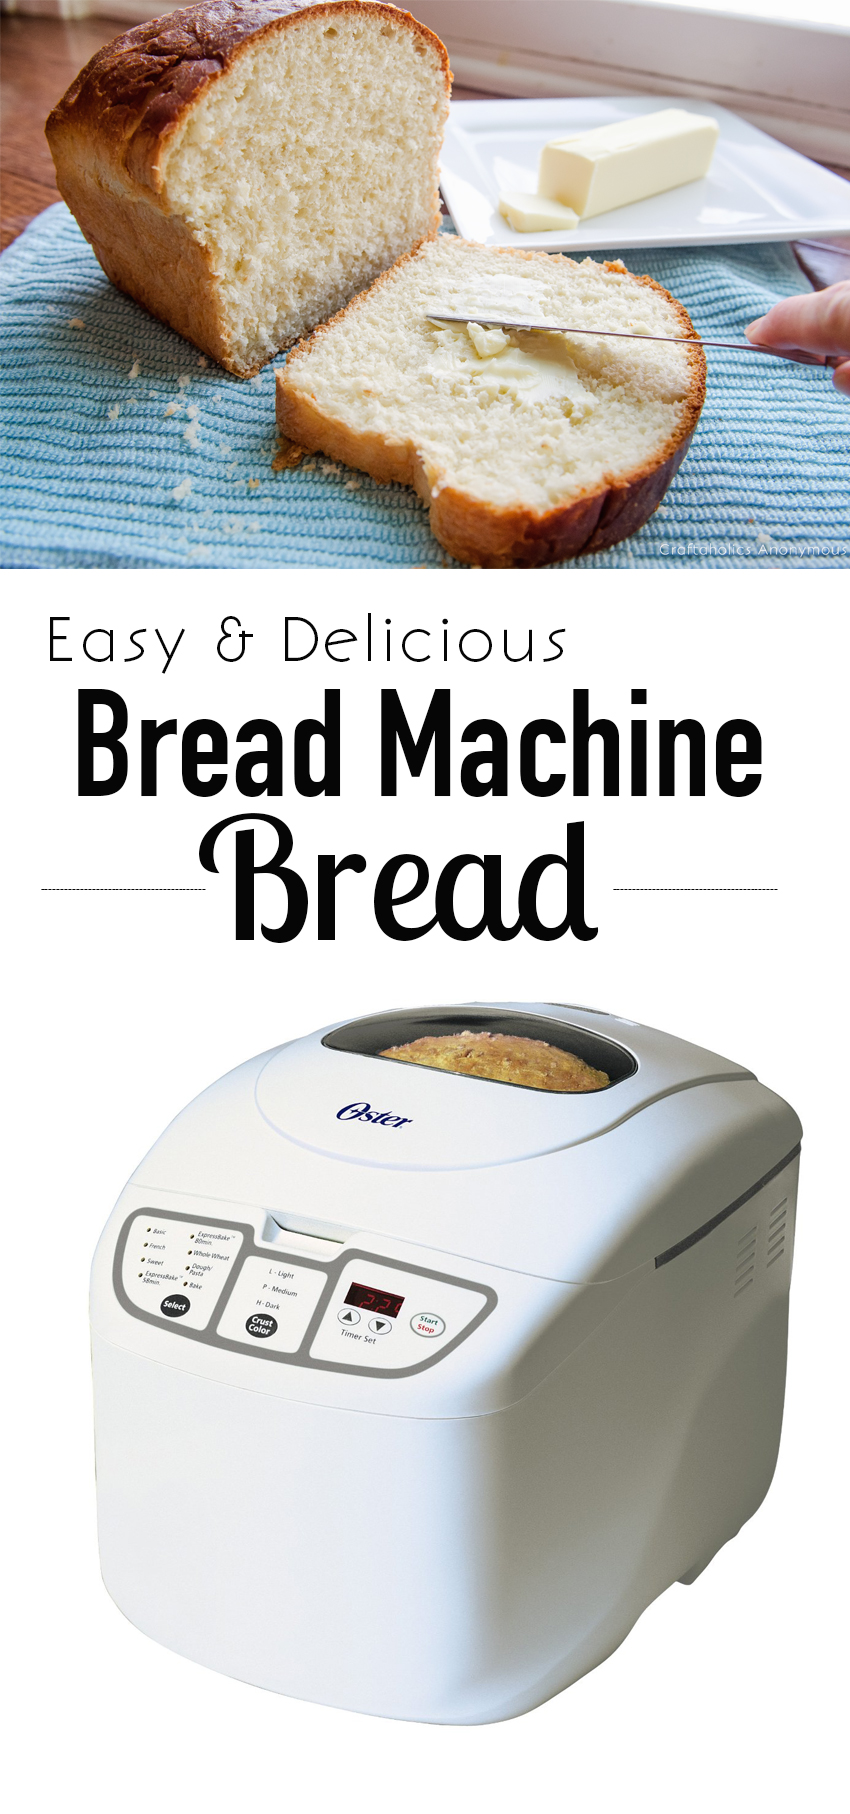 The most Delicious Bread Machine bread recipe ever! Get homemade bread the easy way.